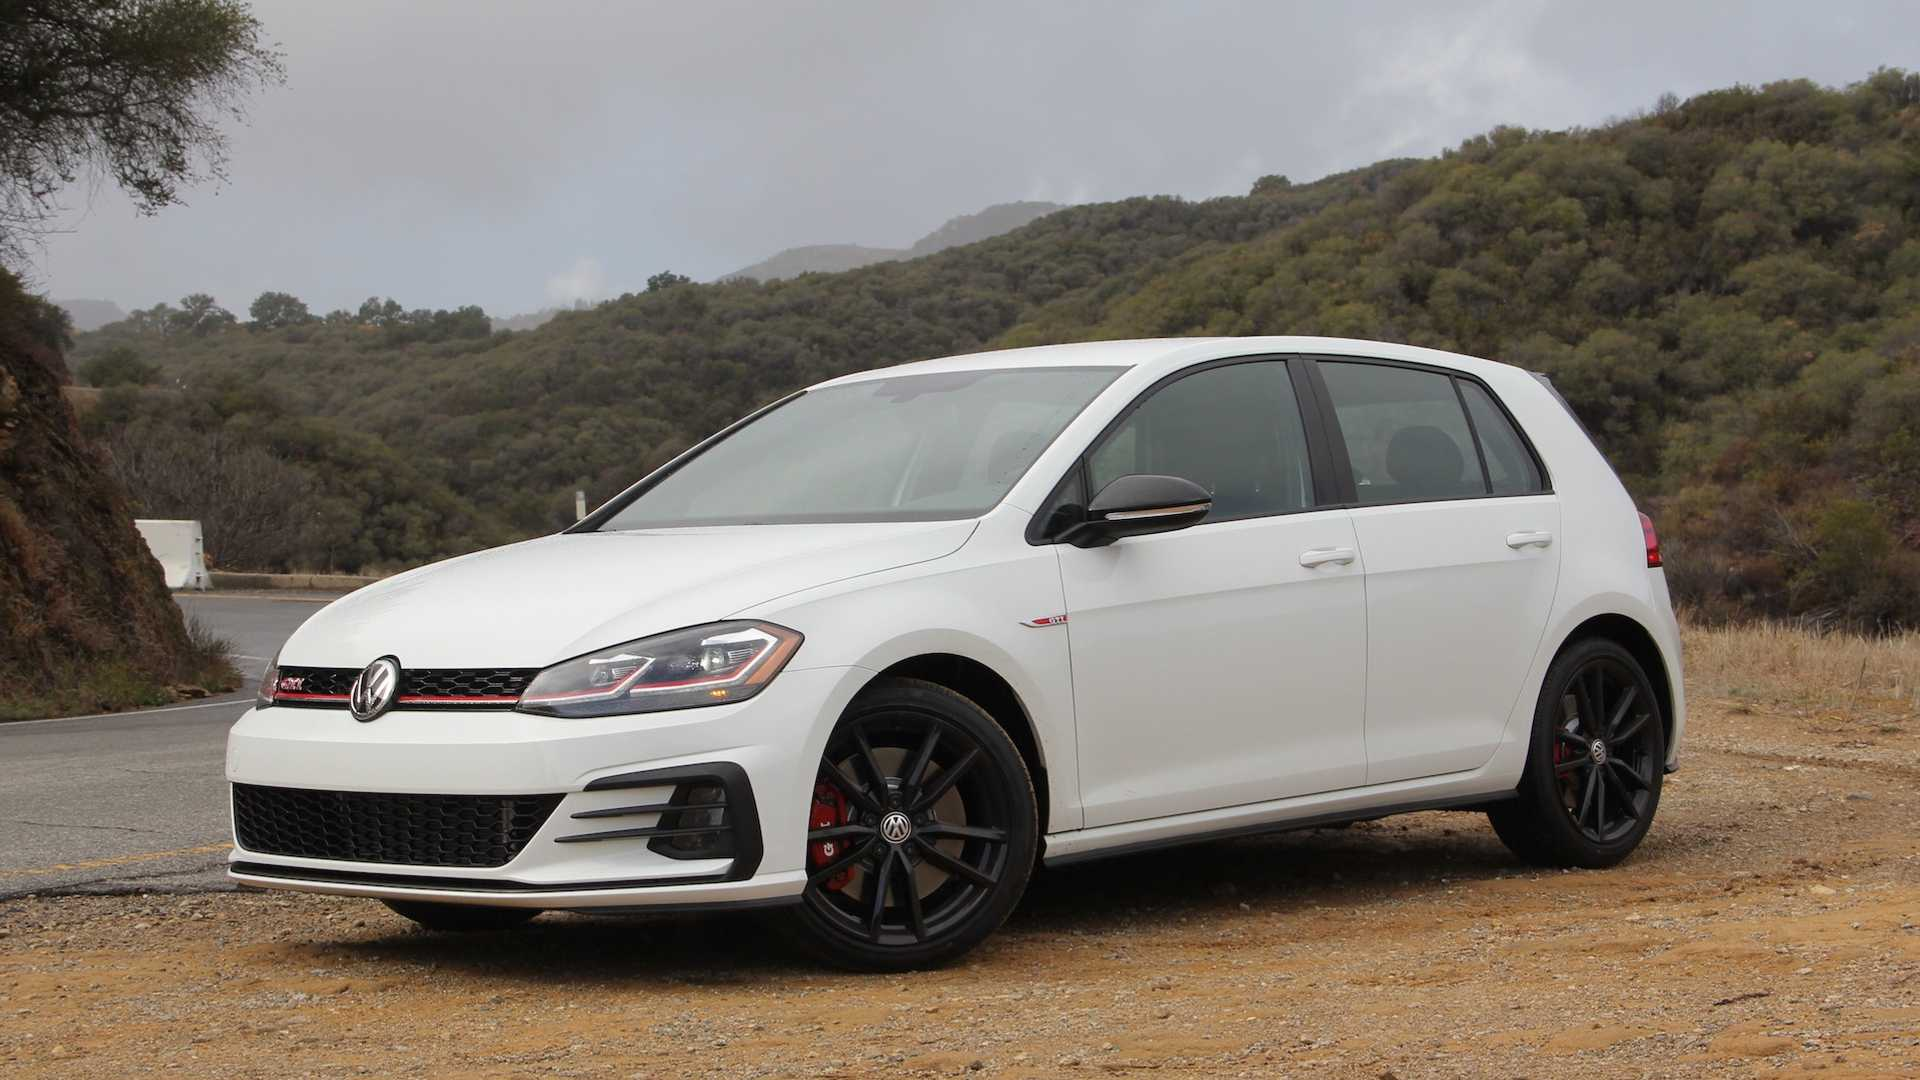 96 The Best 2019 Volkswagen Gti Rabbit Edition Prices